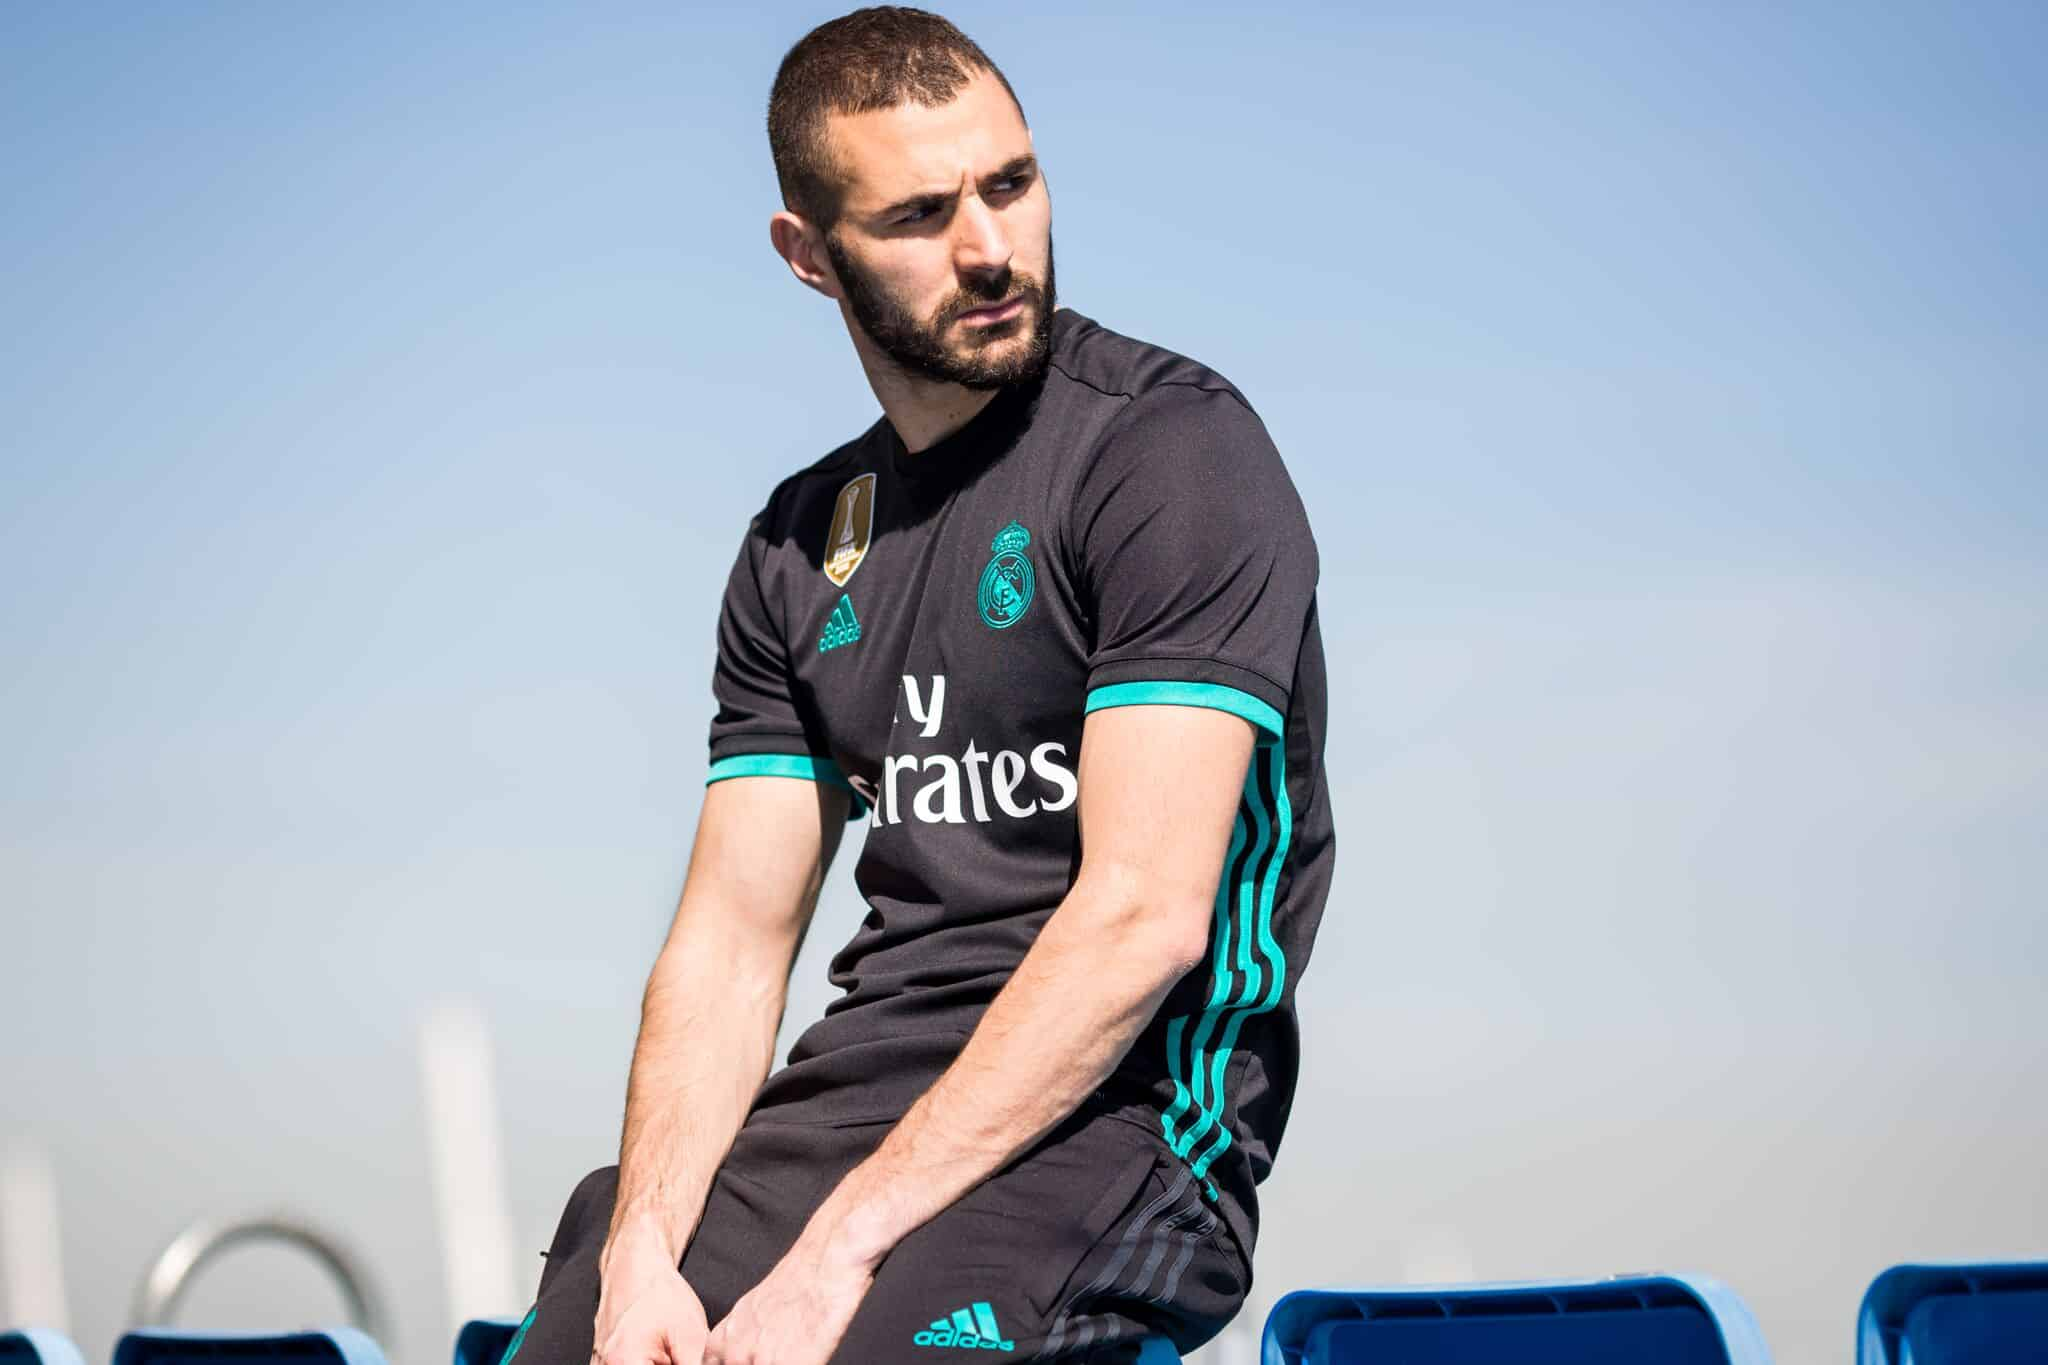 nouveau-maillot-football-away-real-madrid-2017-2018